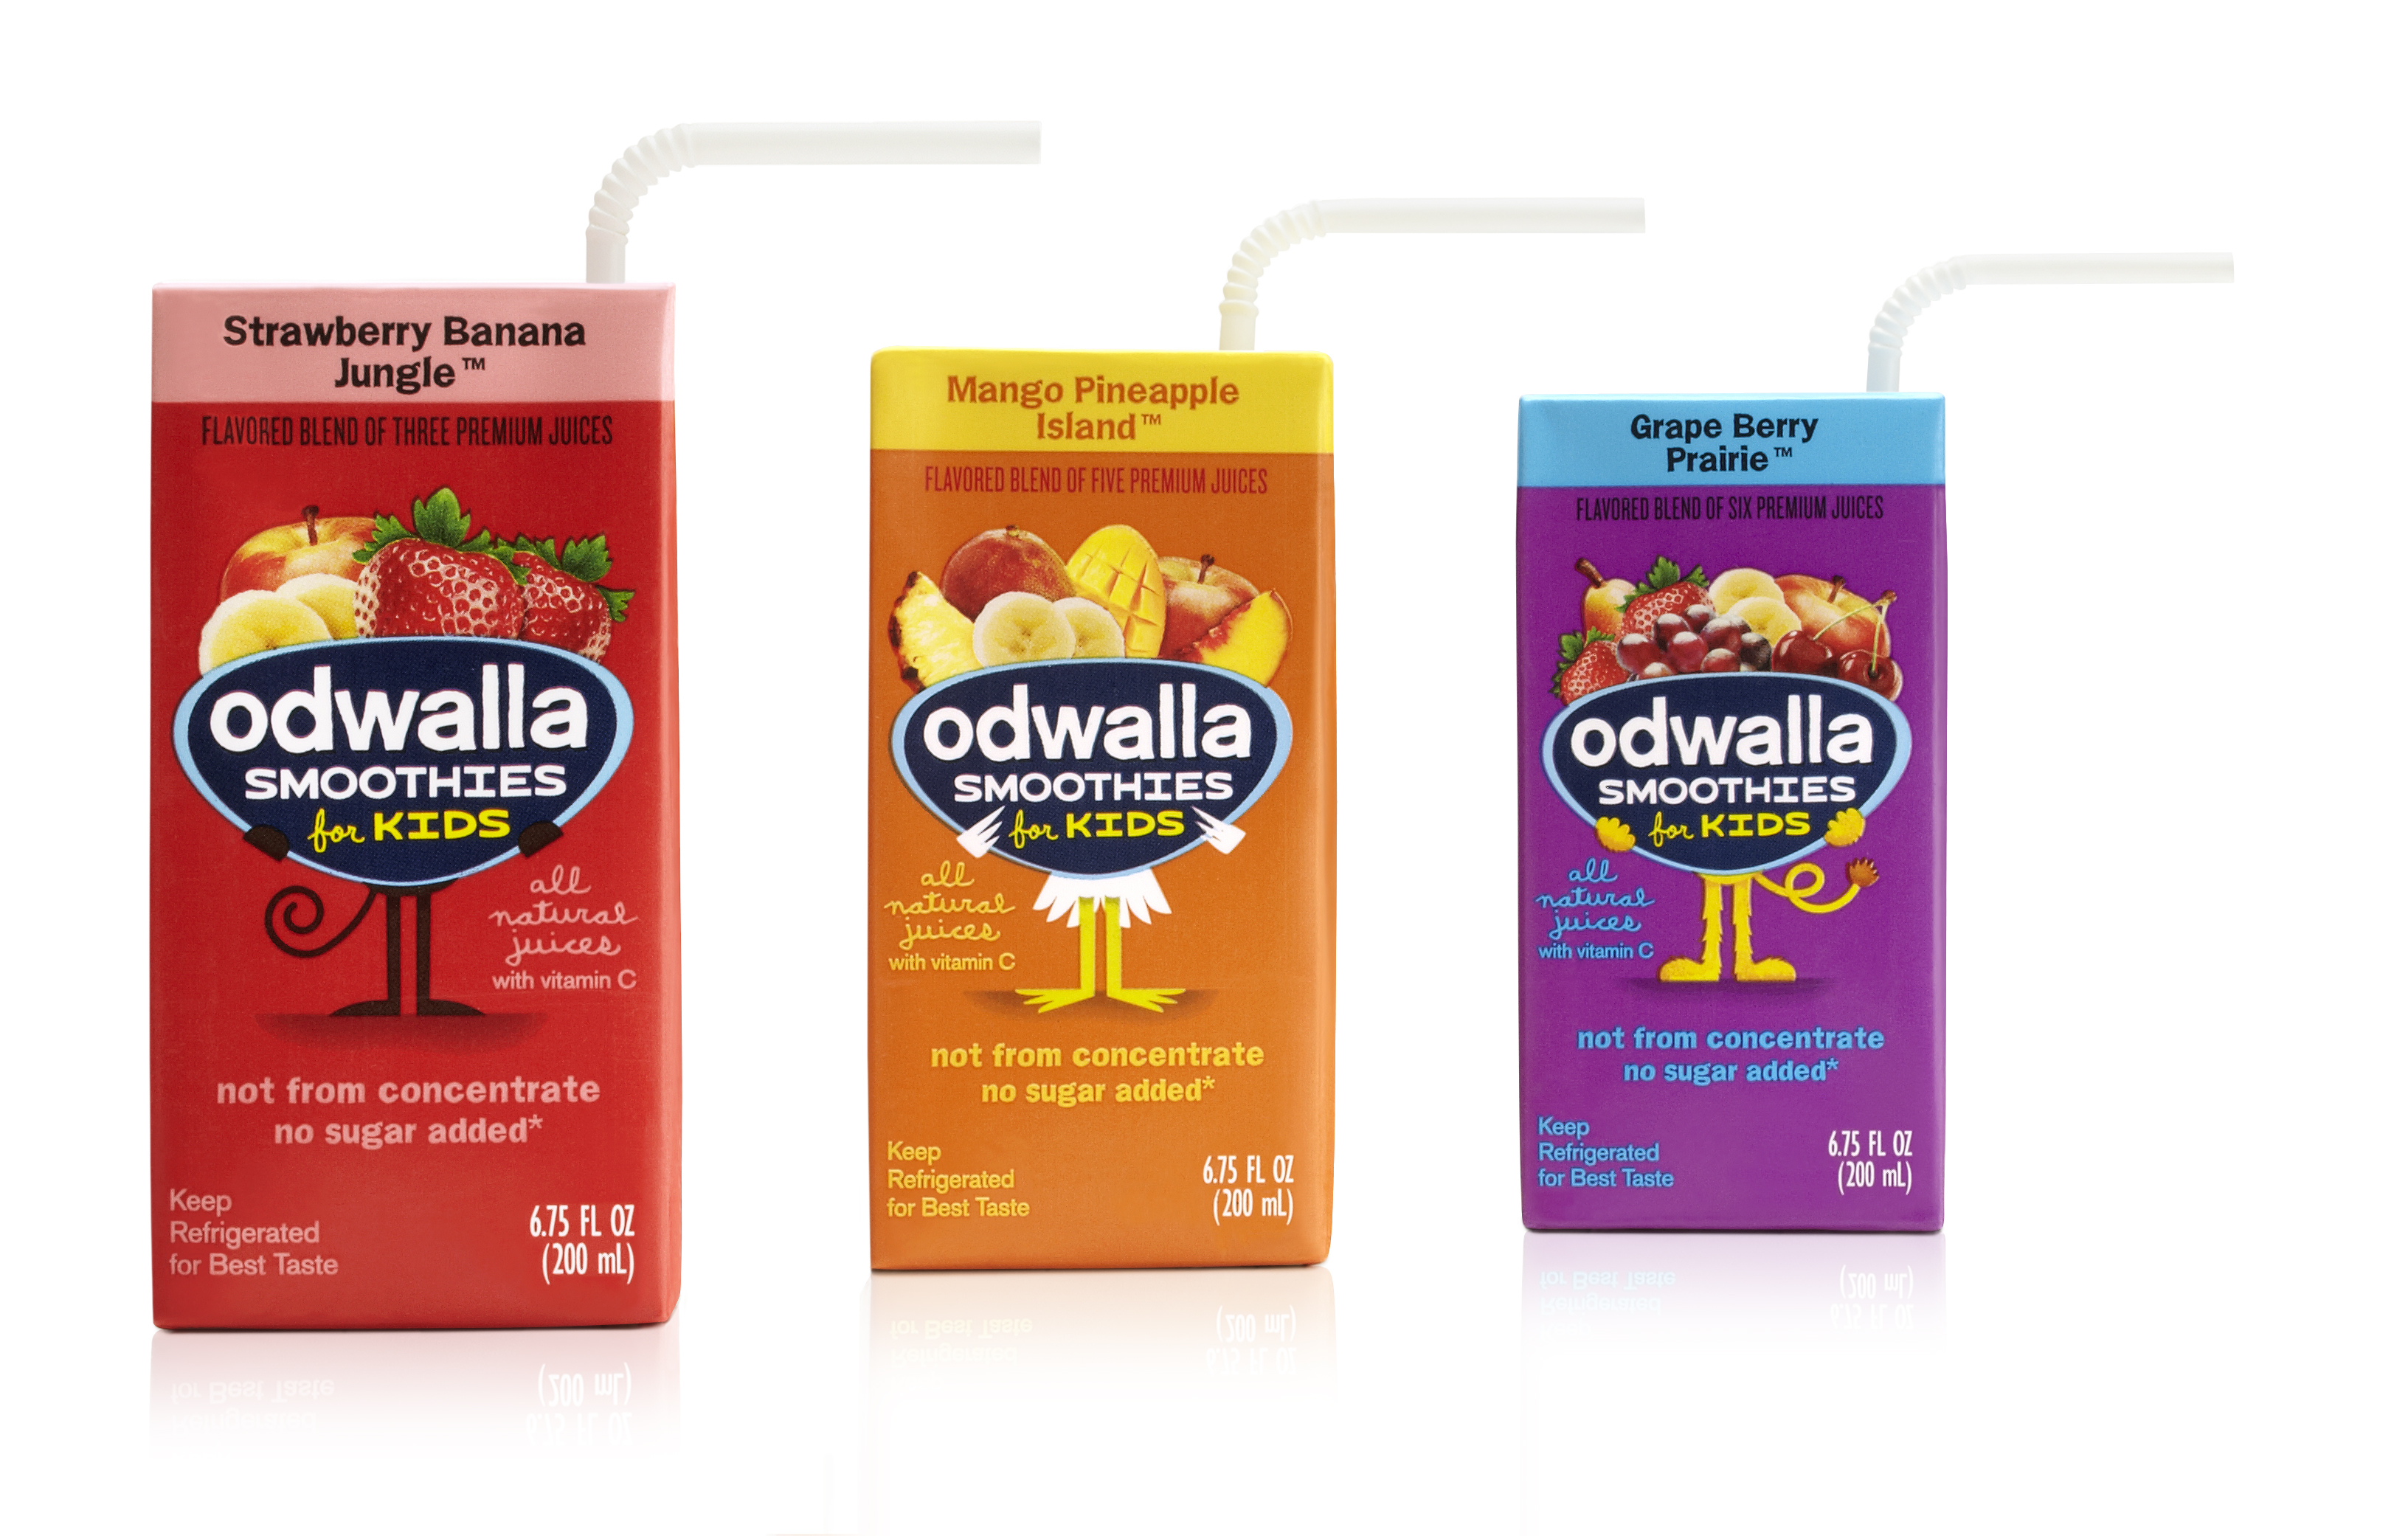 New Odwalla Smoothies For Kids